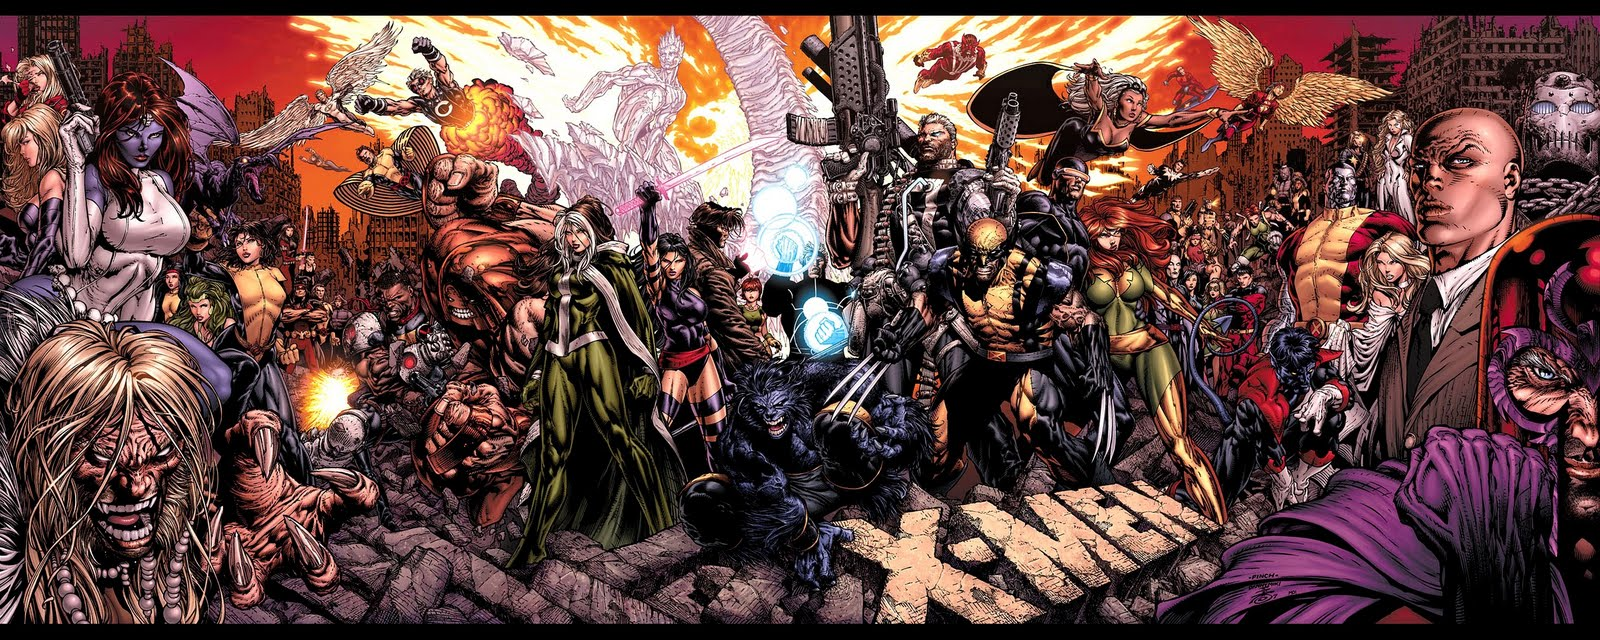 Download All Marvel Comics Together HD Desktop WallpapersHigh 1600x640